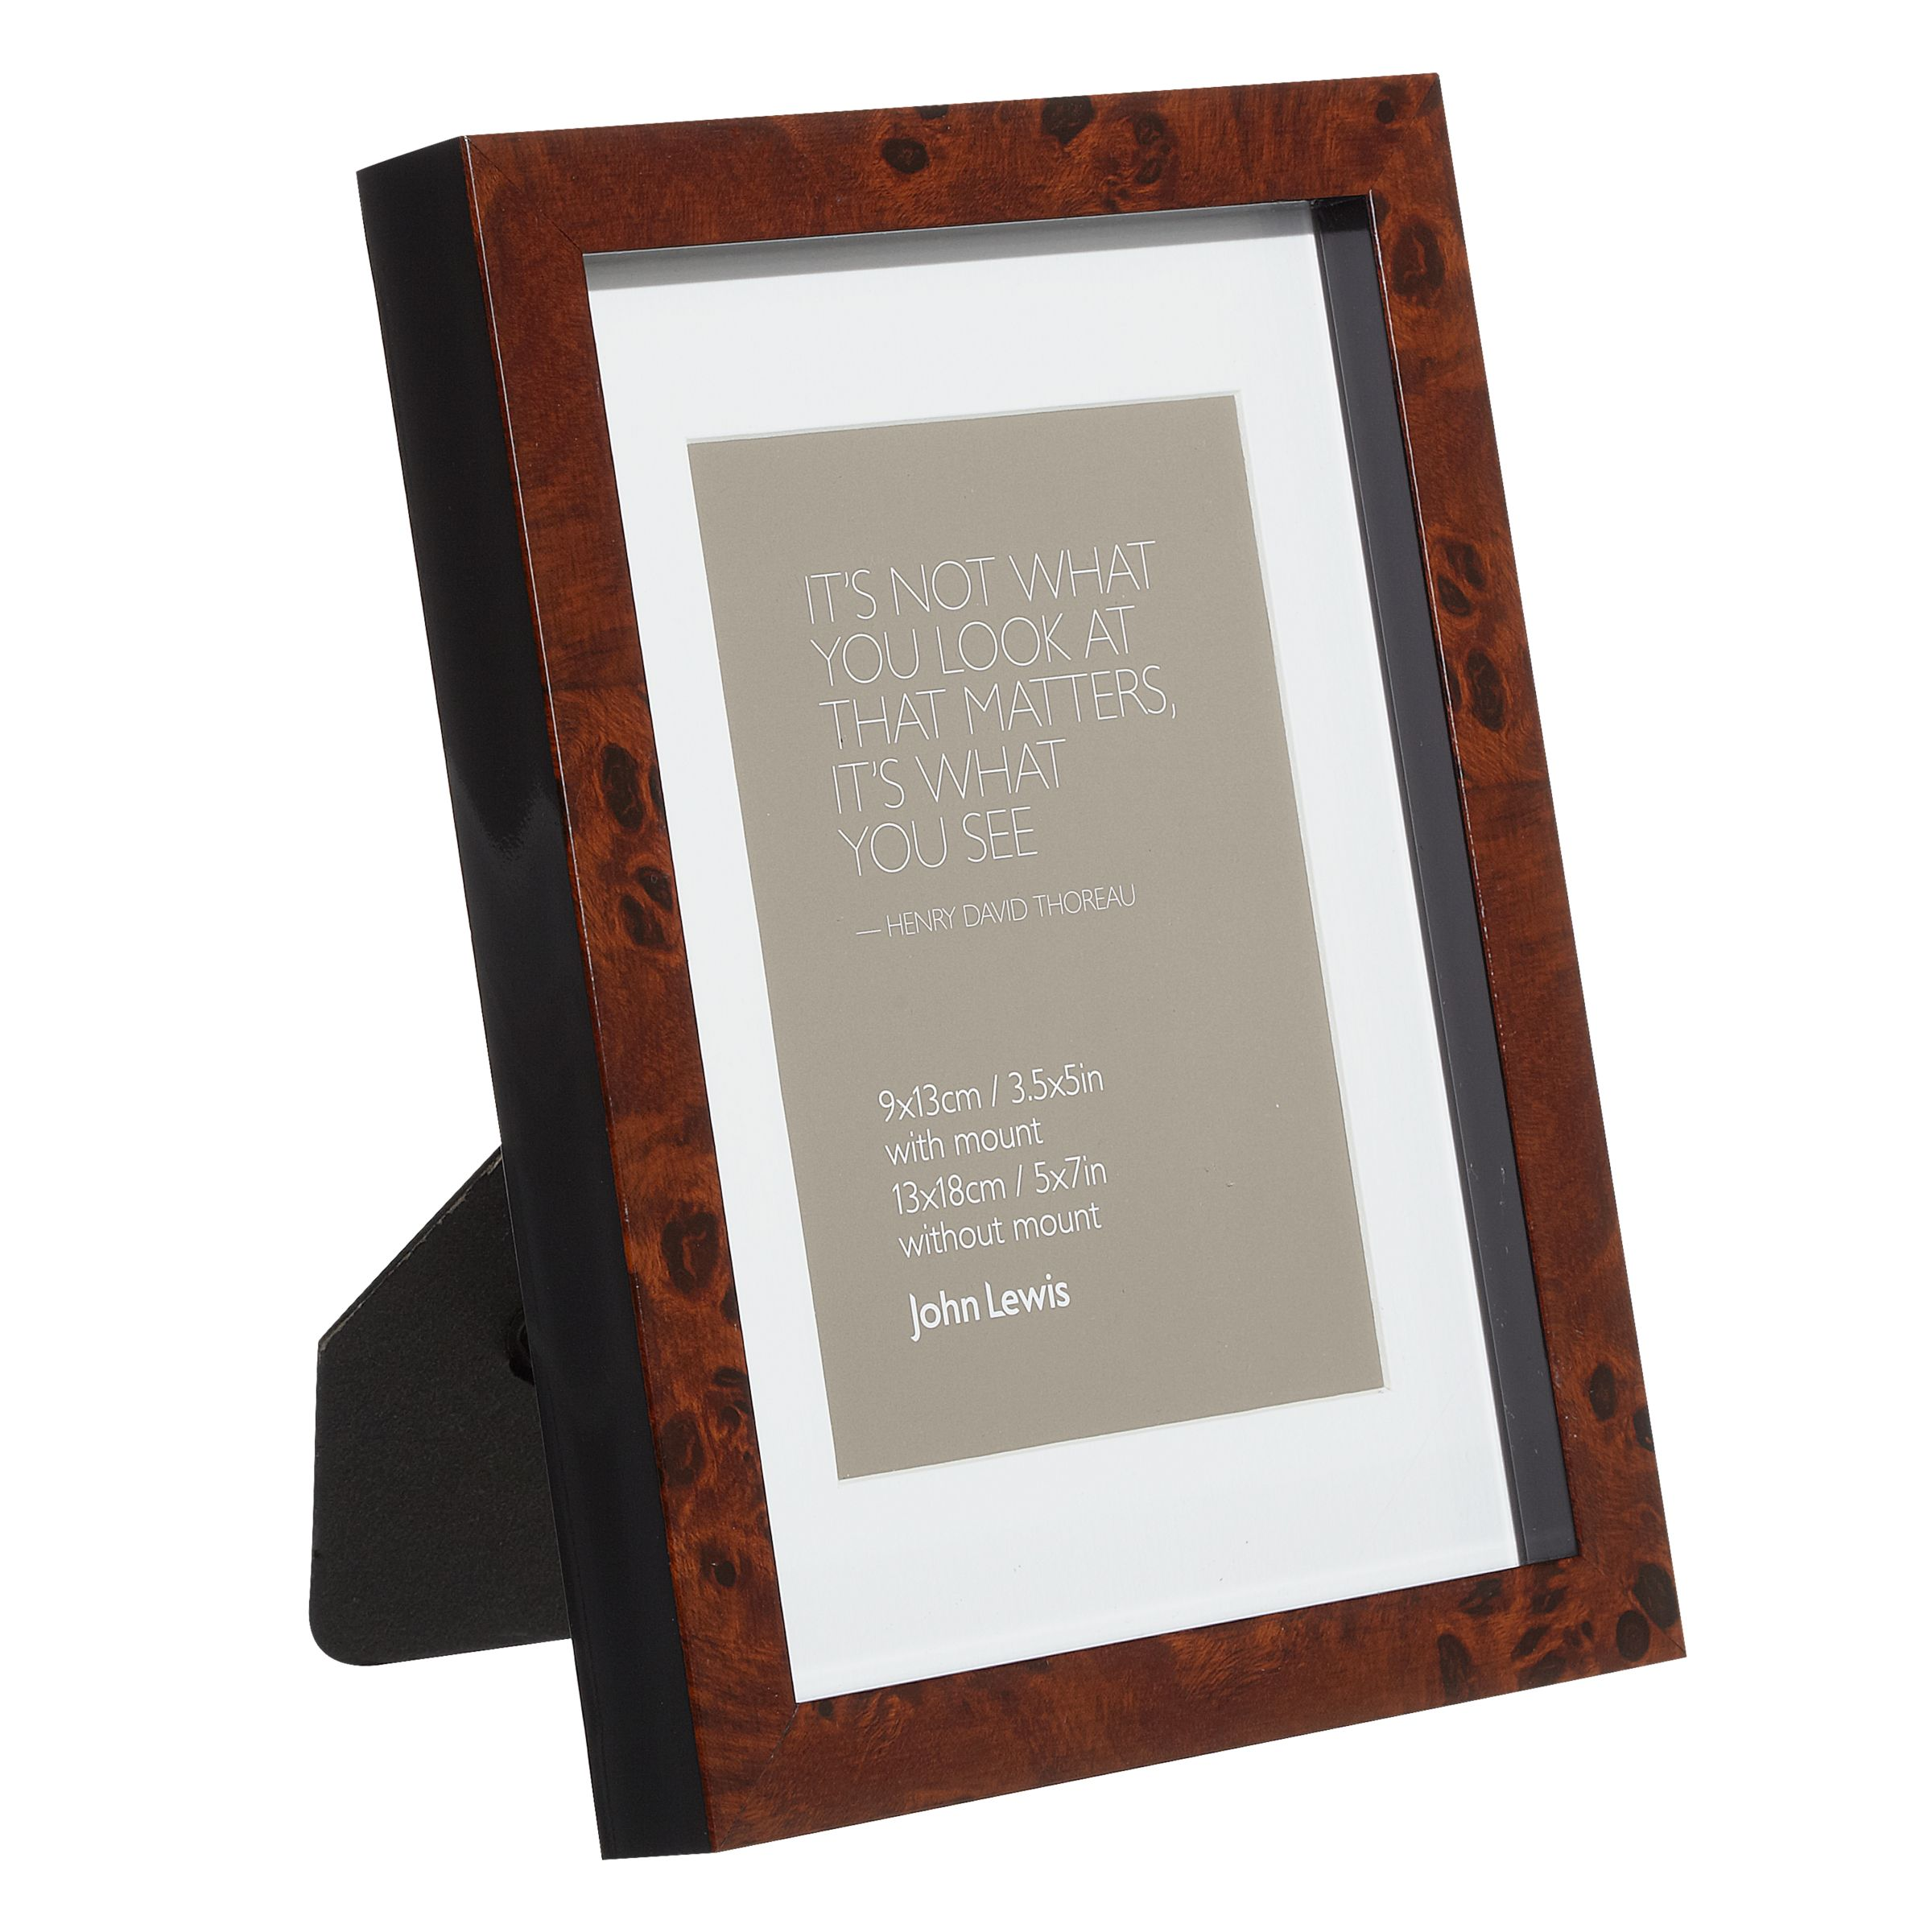 John Lewis Wedding Gift List Review : John Lewis Walnut Veneer Effect Photo Frame, 3.5 5